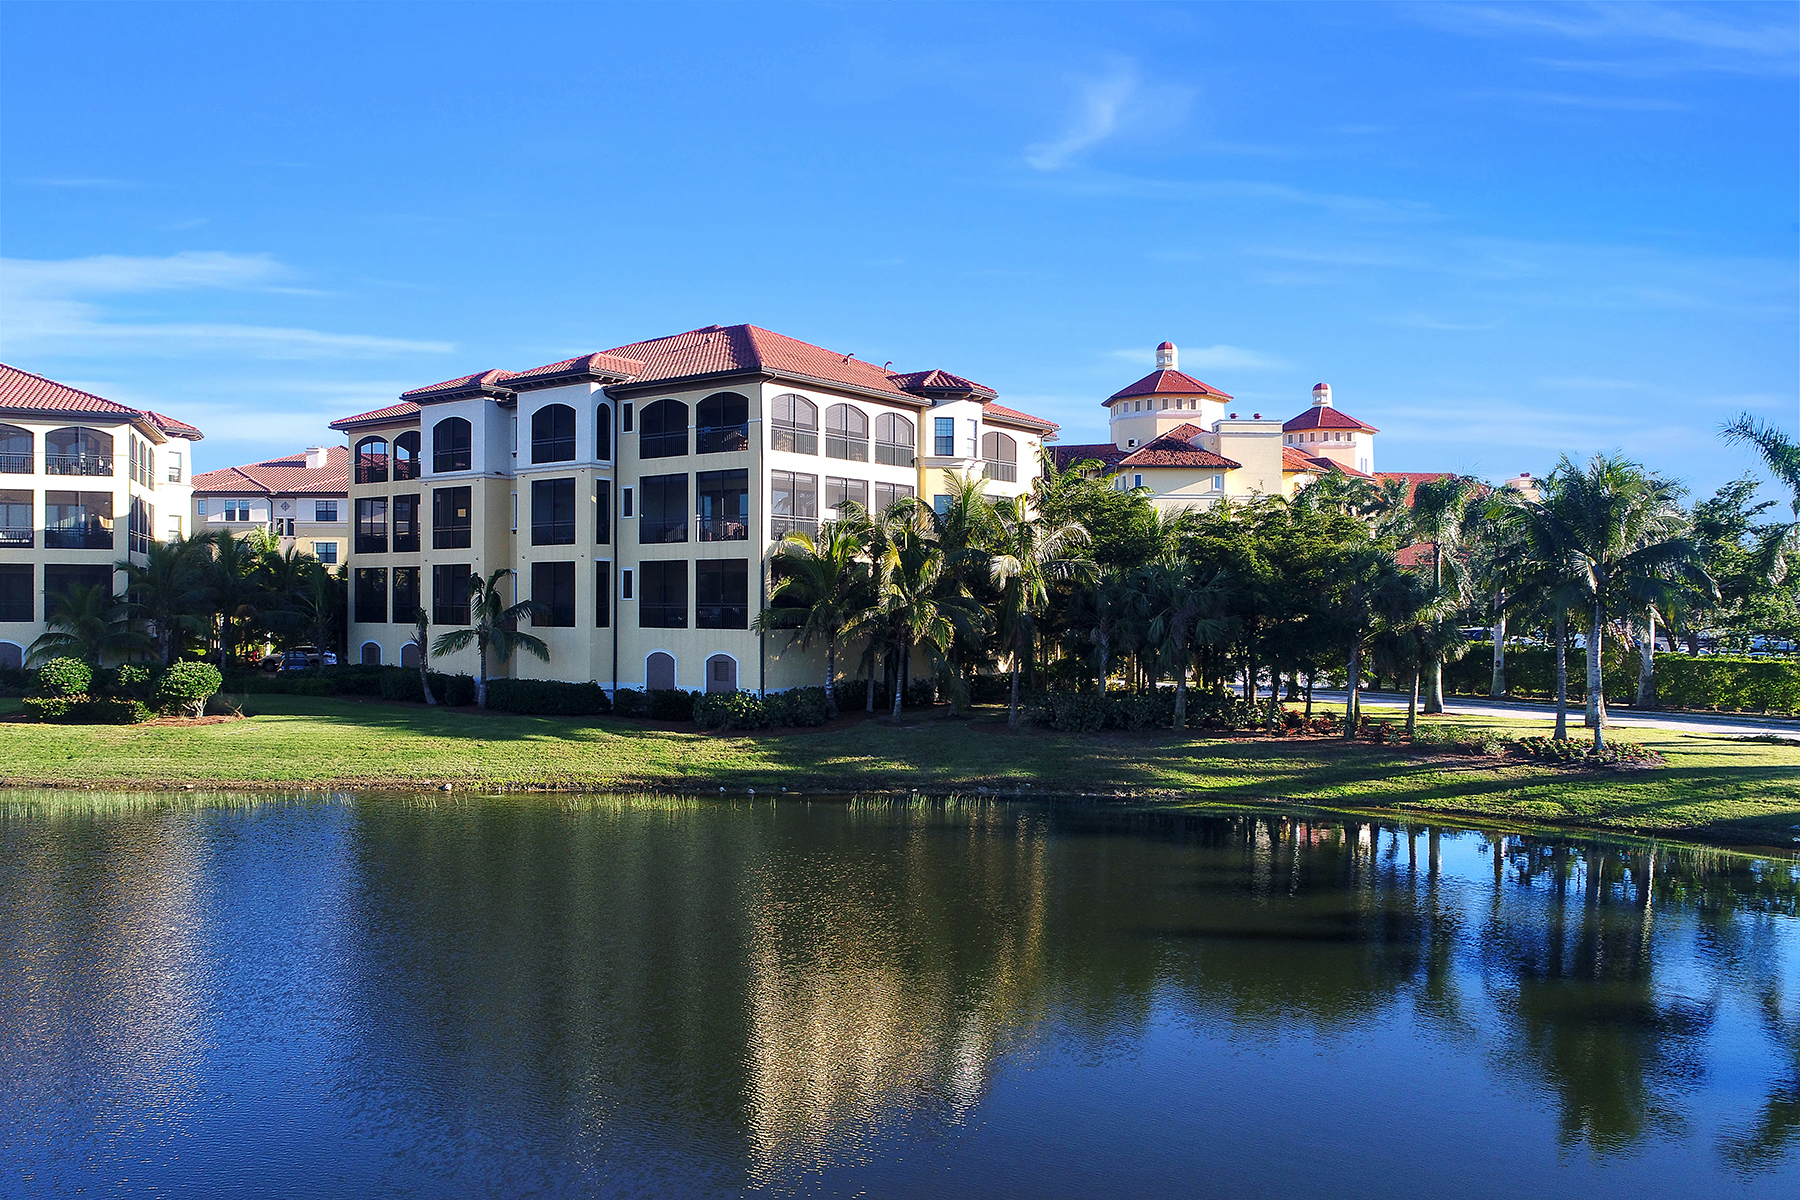 Condominium for Sale at TIBURON - MARQUESA ROYALE 2555 Marquesa Royale Ln 1-101, Naples, Florida 34109 United States